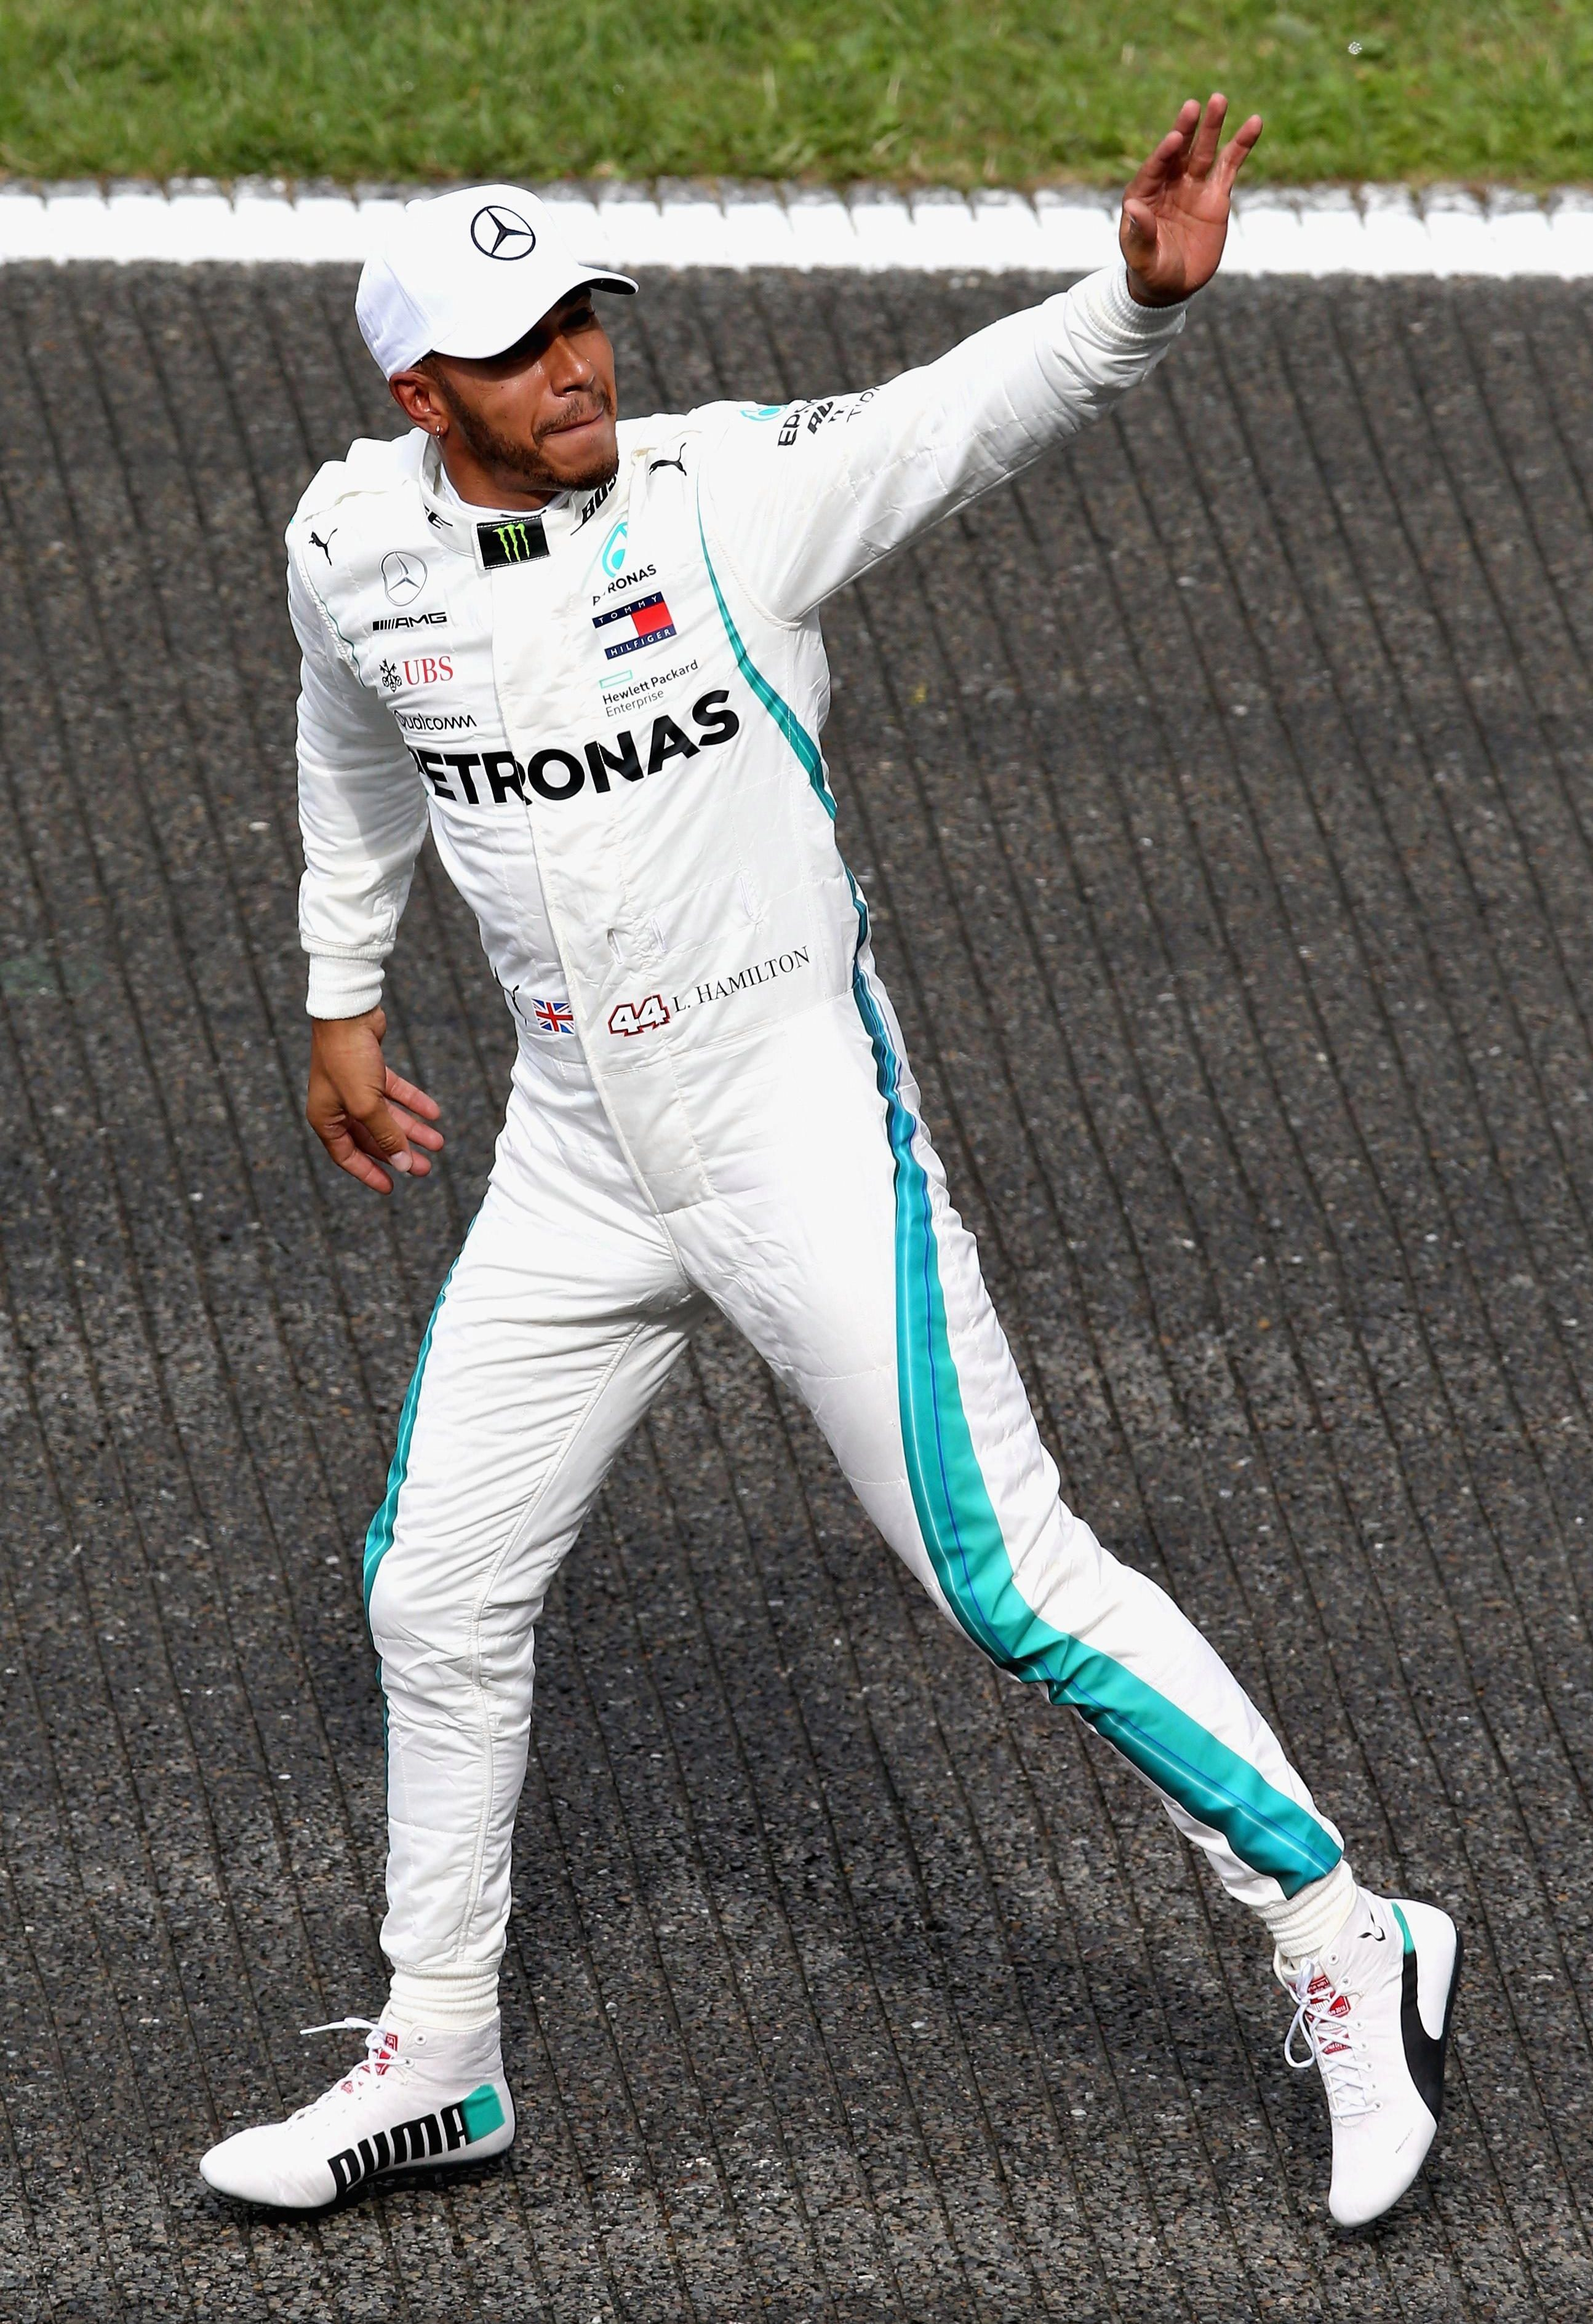 It is the British driver's 78th pole position in Formula 1 and extends his record